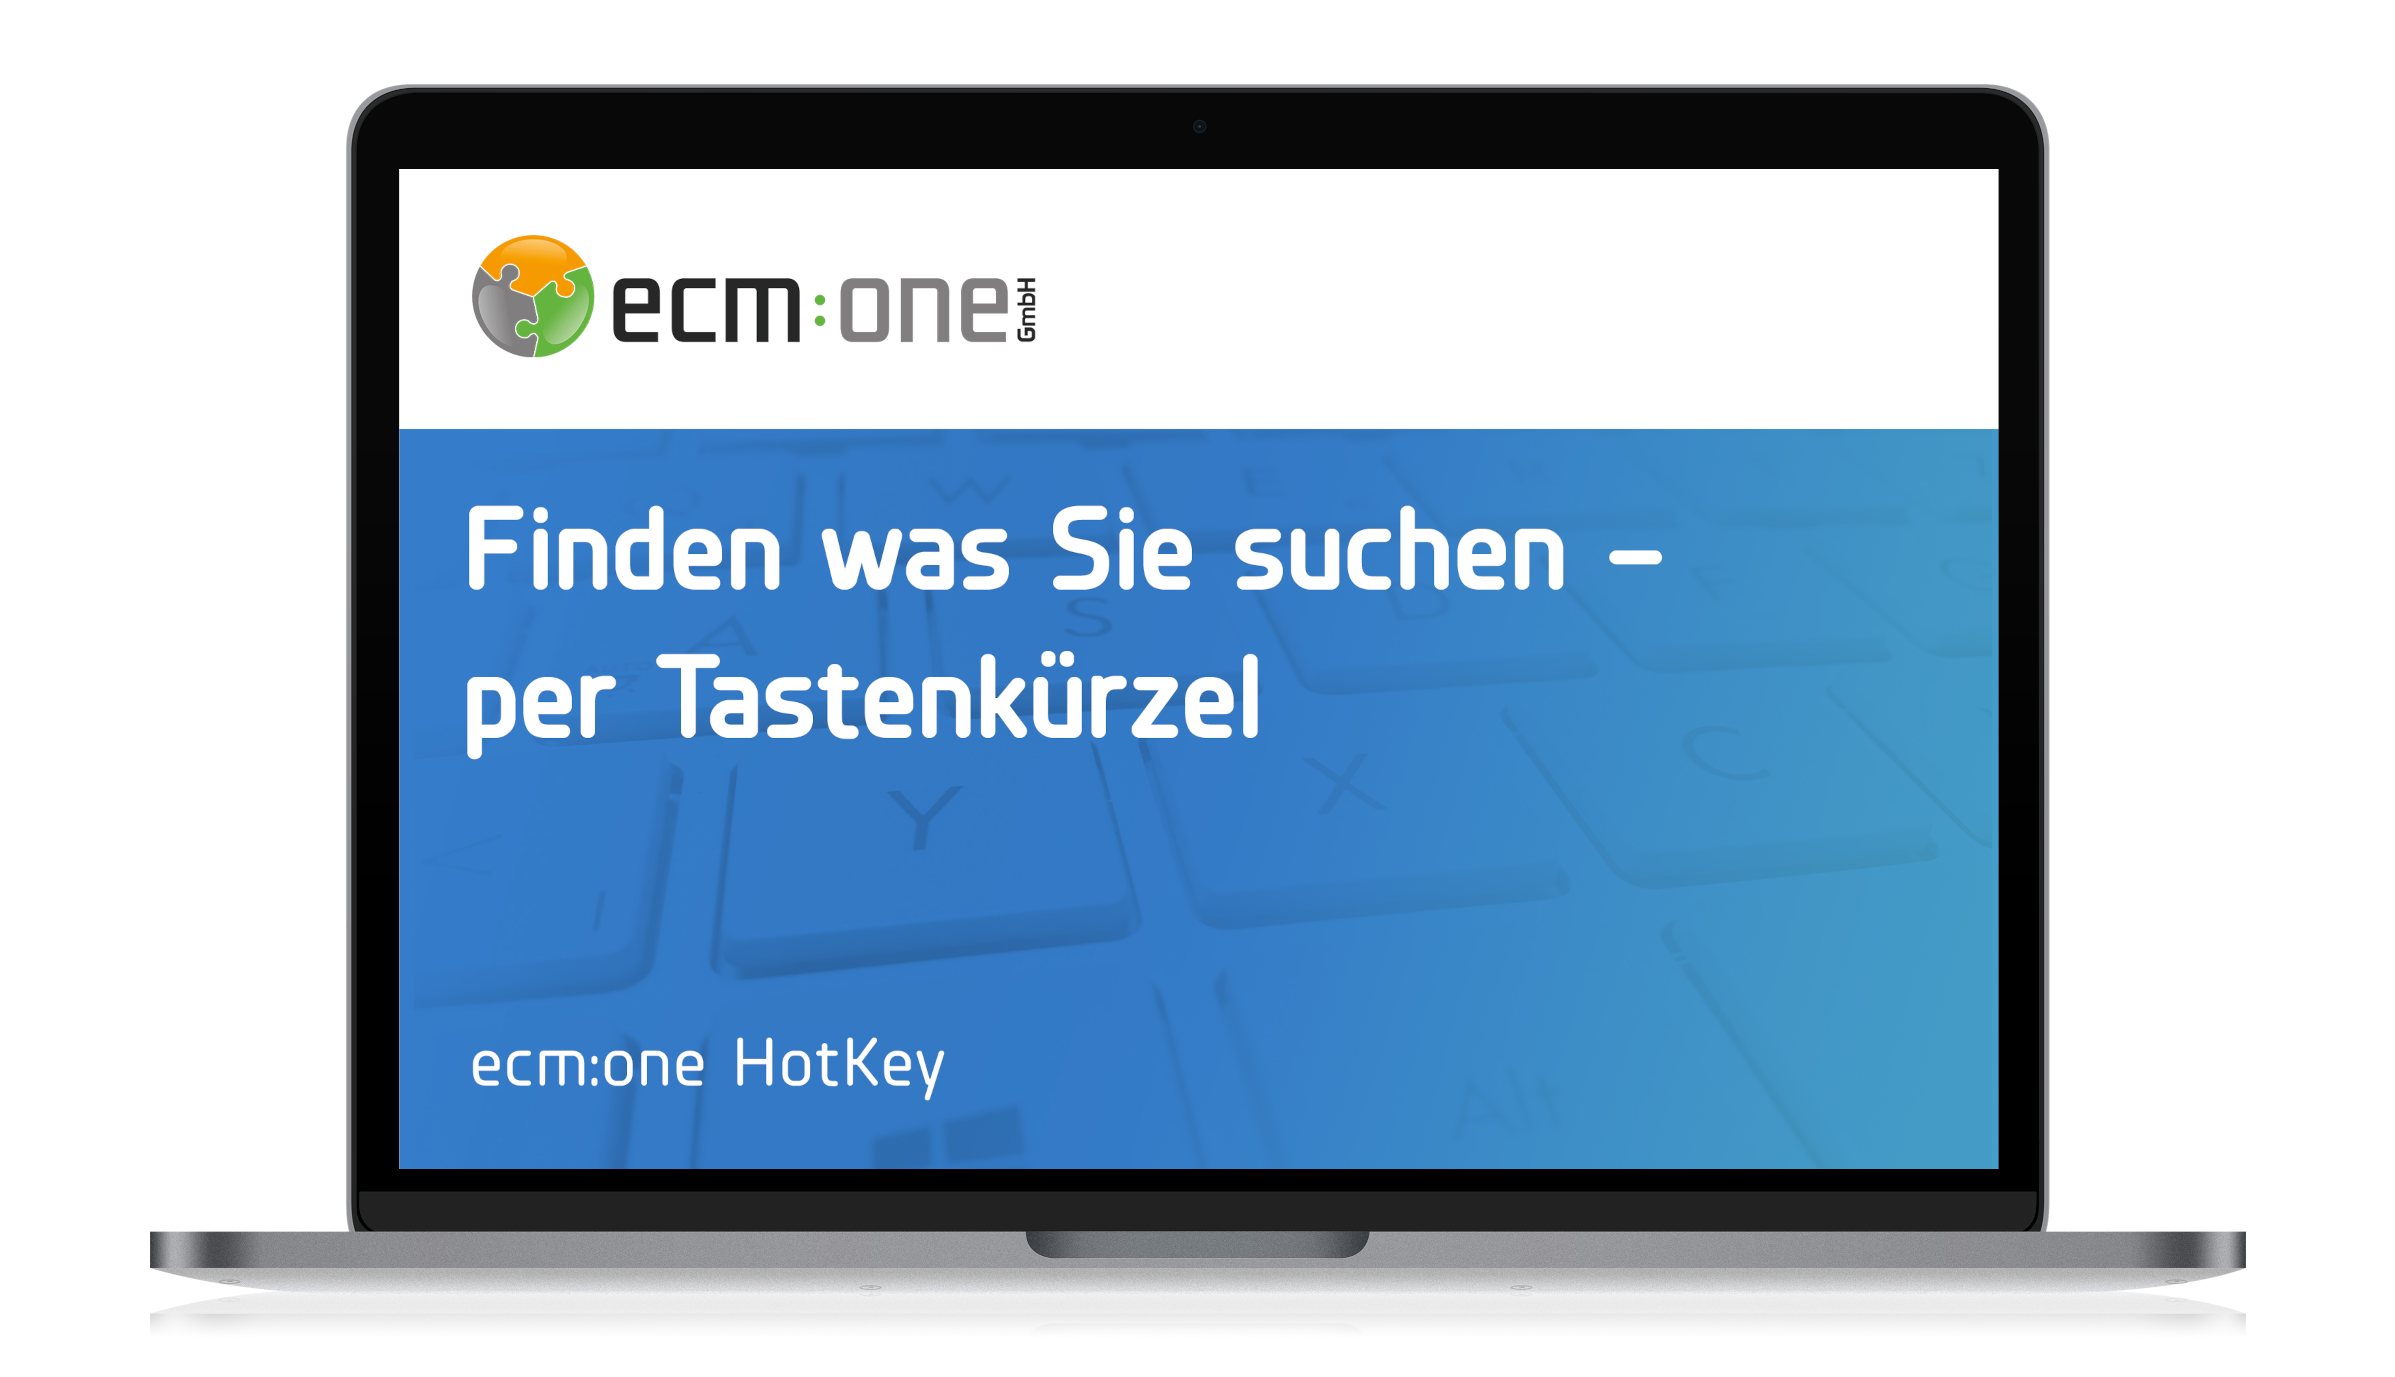 ecm:one HotKey